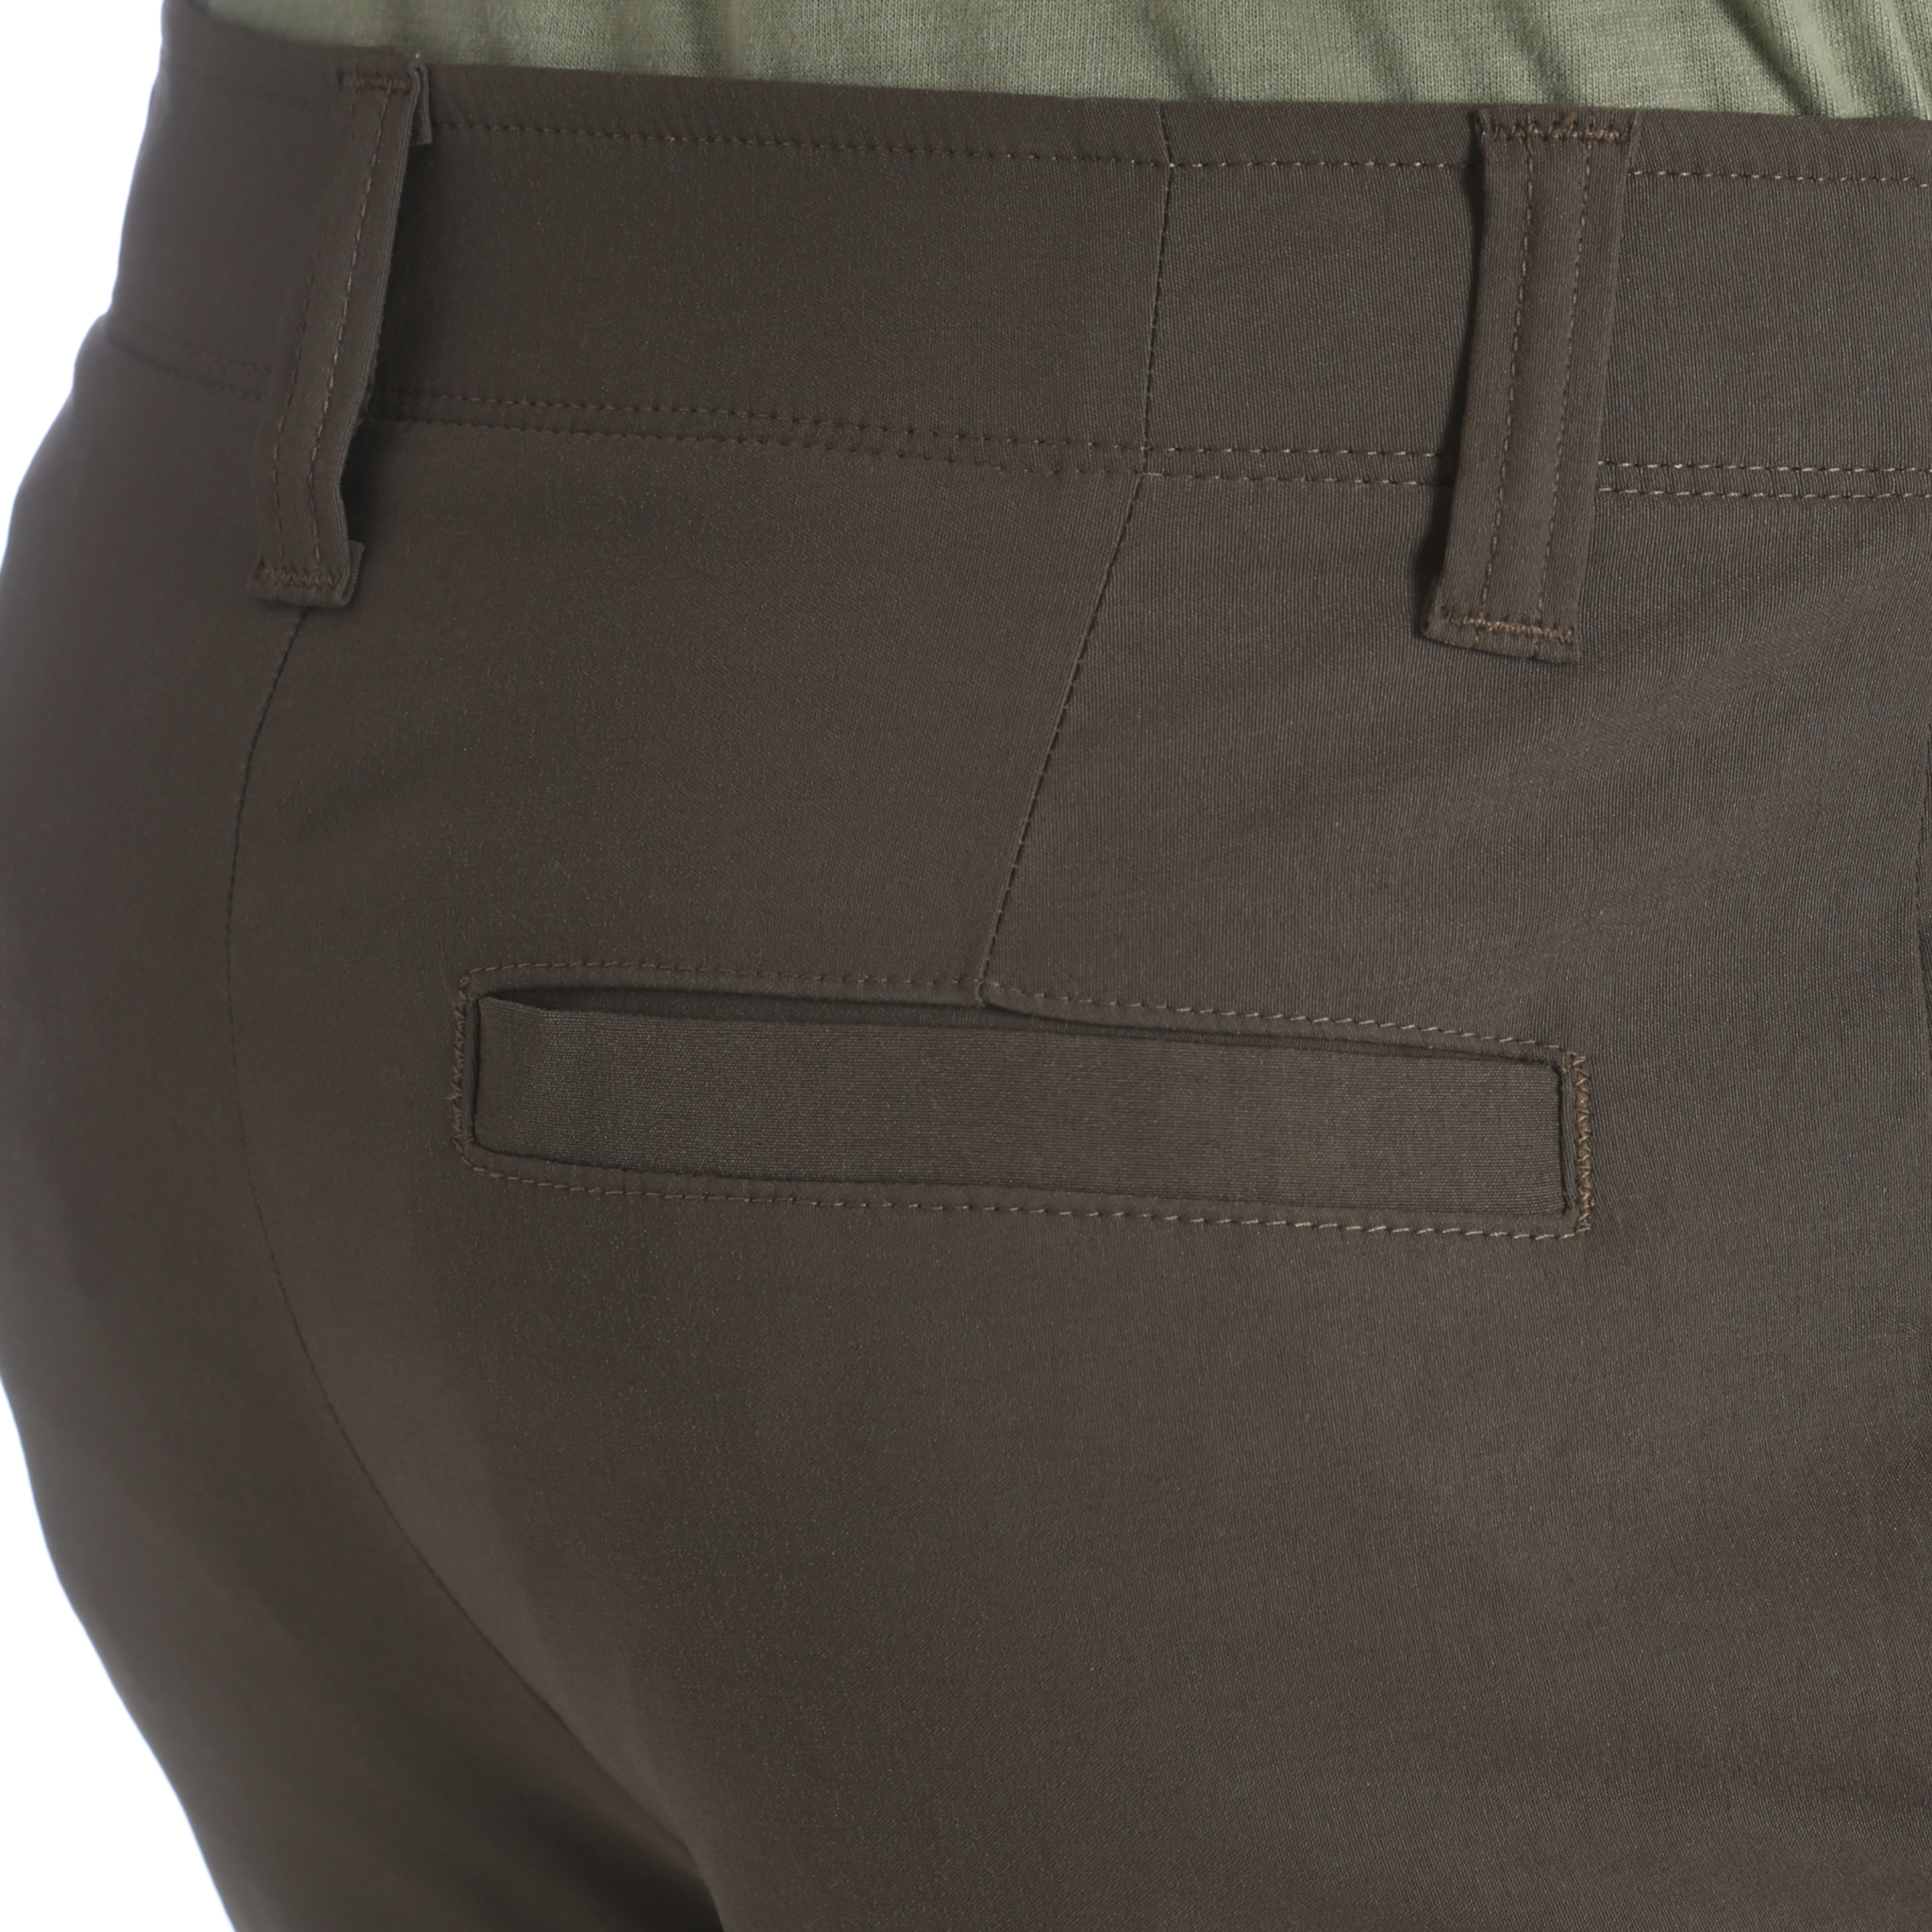 Wrangler-Neuf-Solide-Homme-Performance-Series-Outdoor-Confort-Coupe-Droite-Pantalon miniature 11